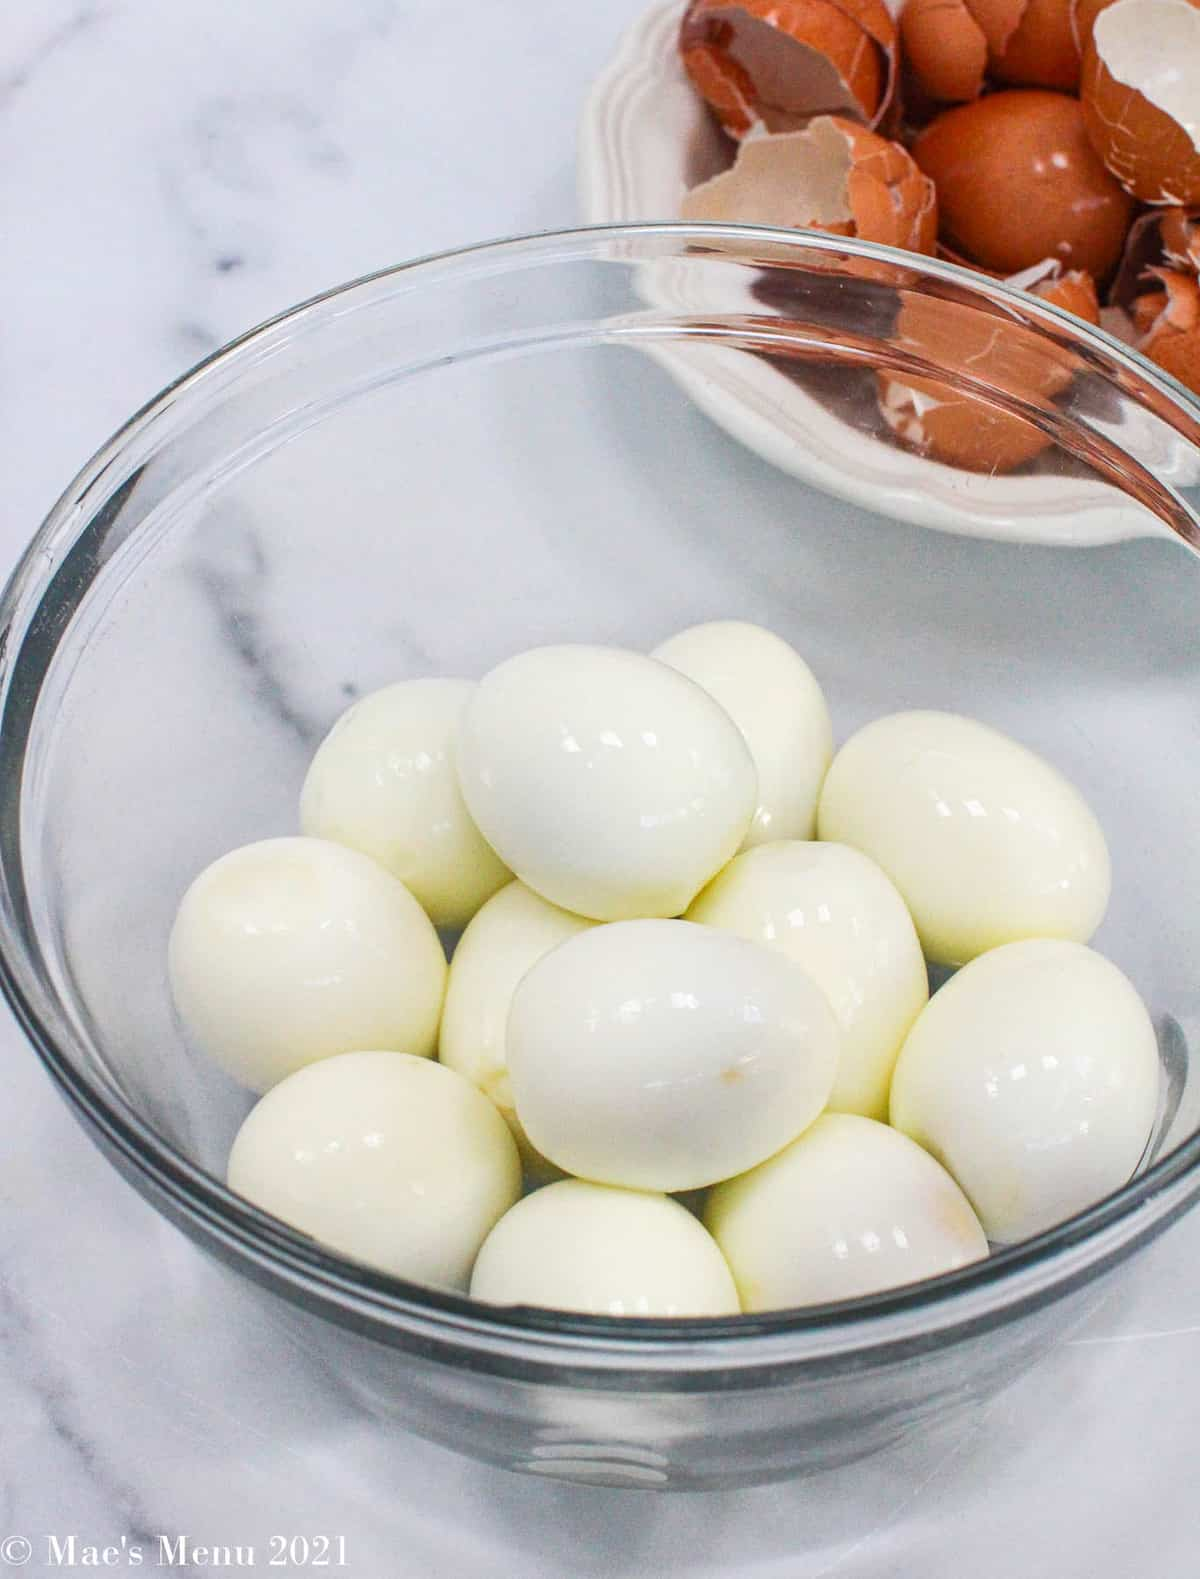 A side shot of a glass bowl of hard boiled eggs